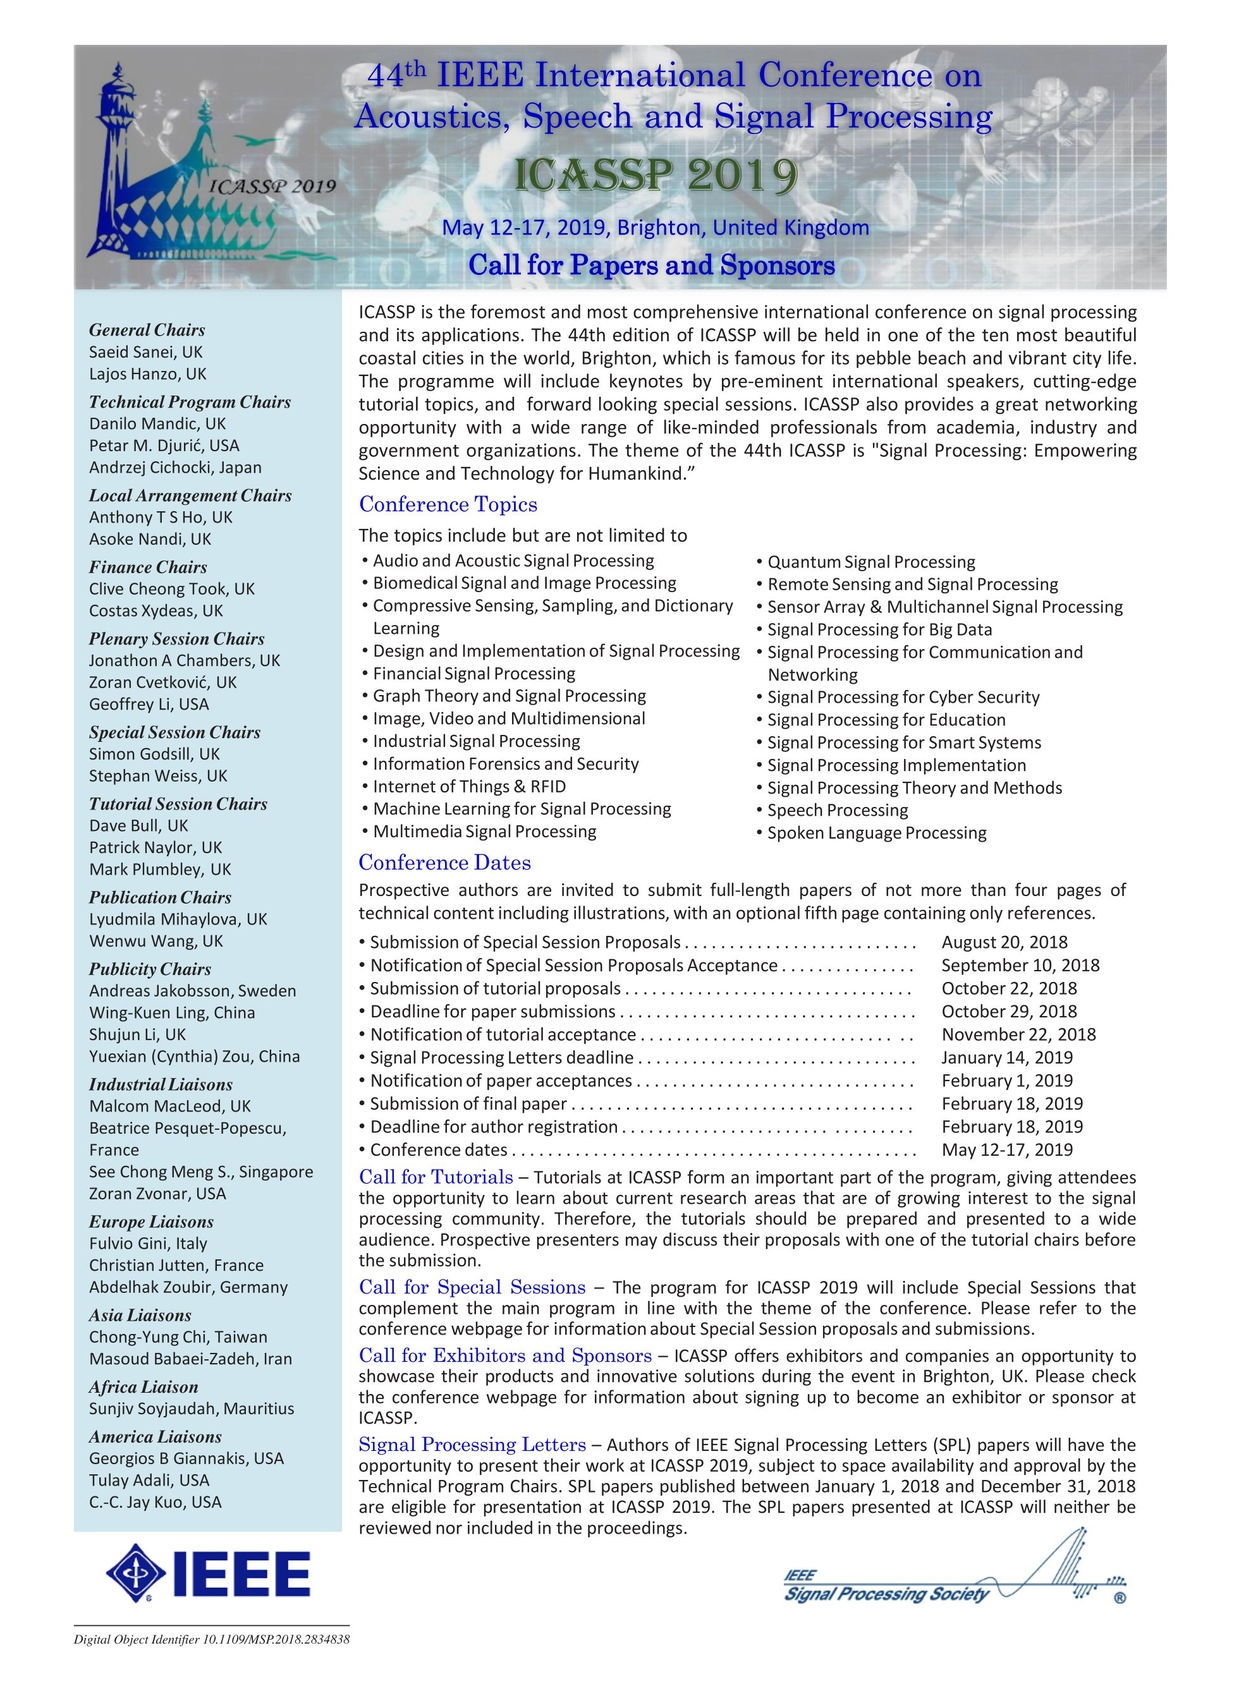 IEEE Signal Processing - July 2018